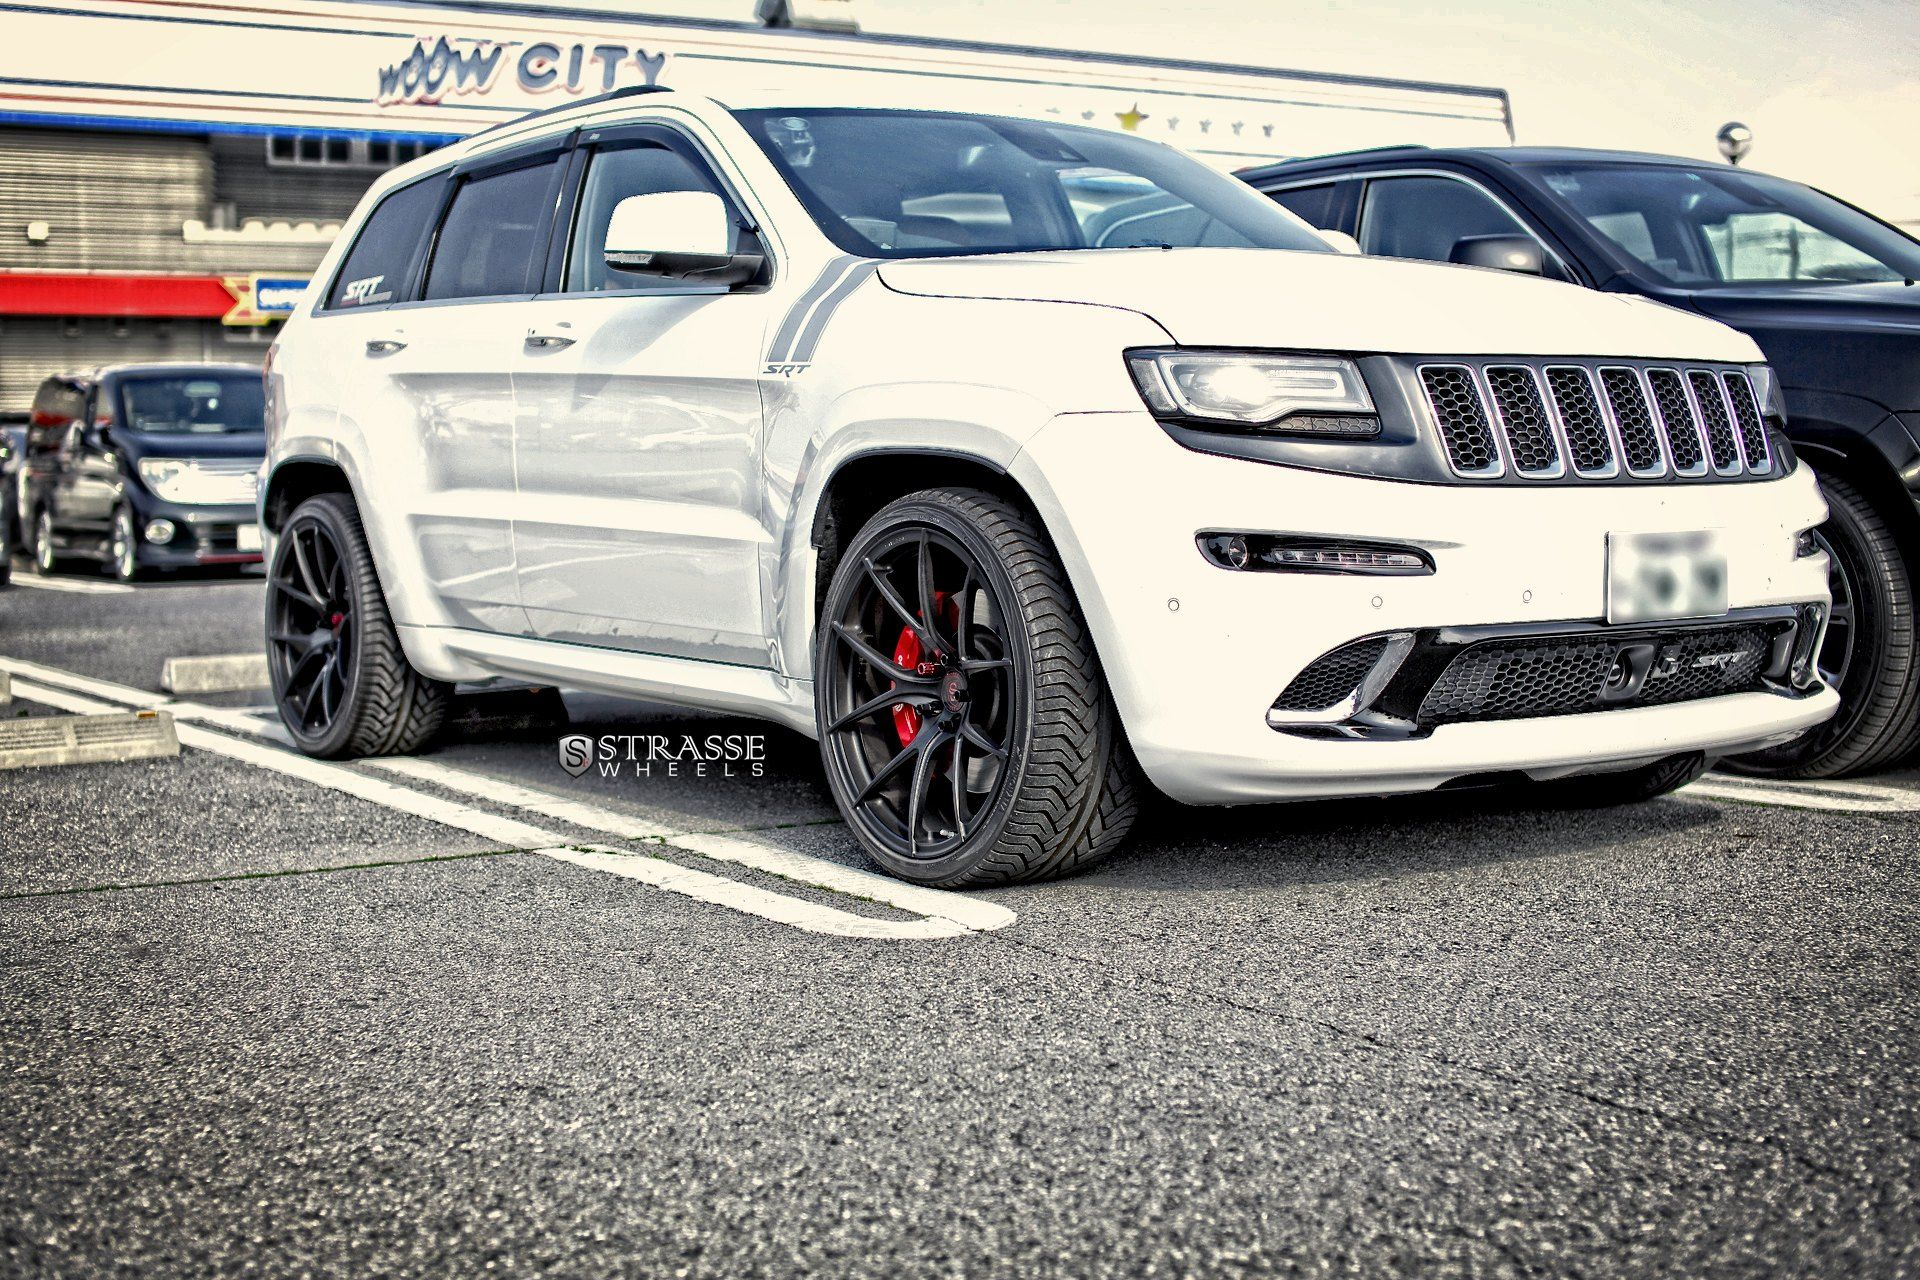 Awesome Tuning Detected On White Jeep Grand Cherokee White Jeep